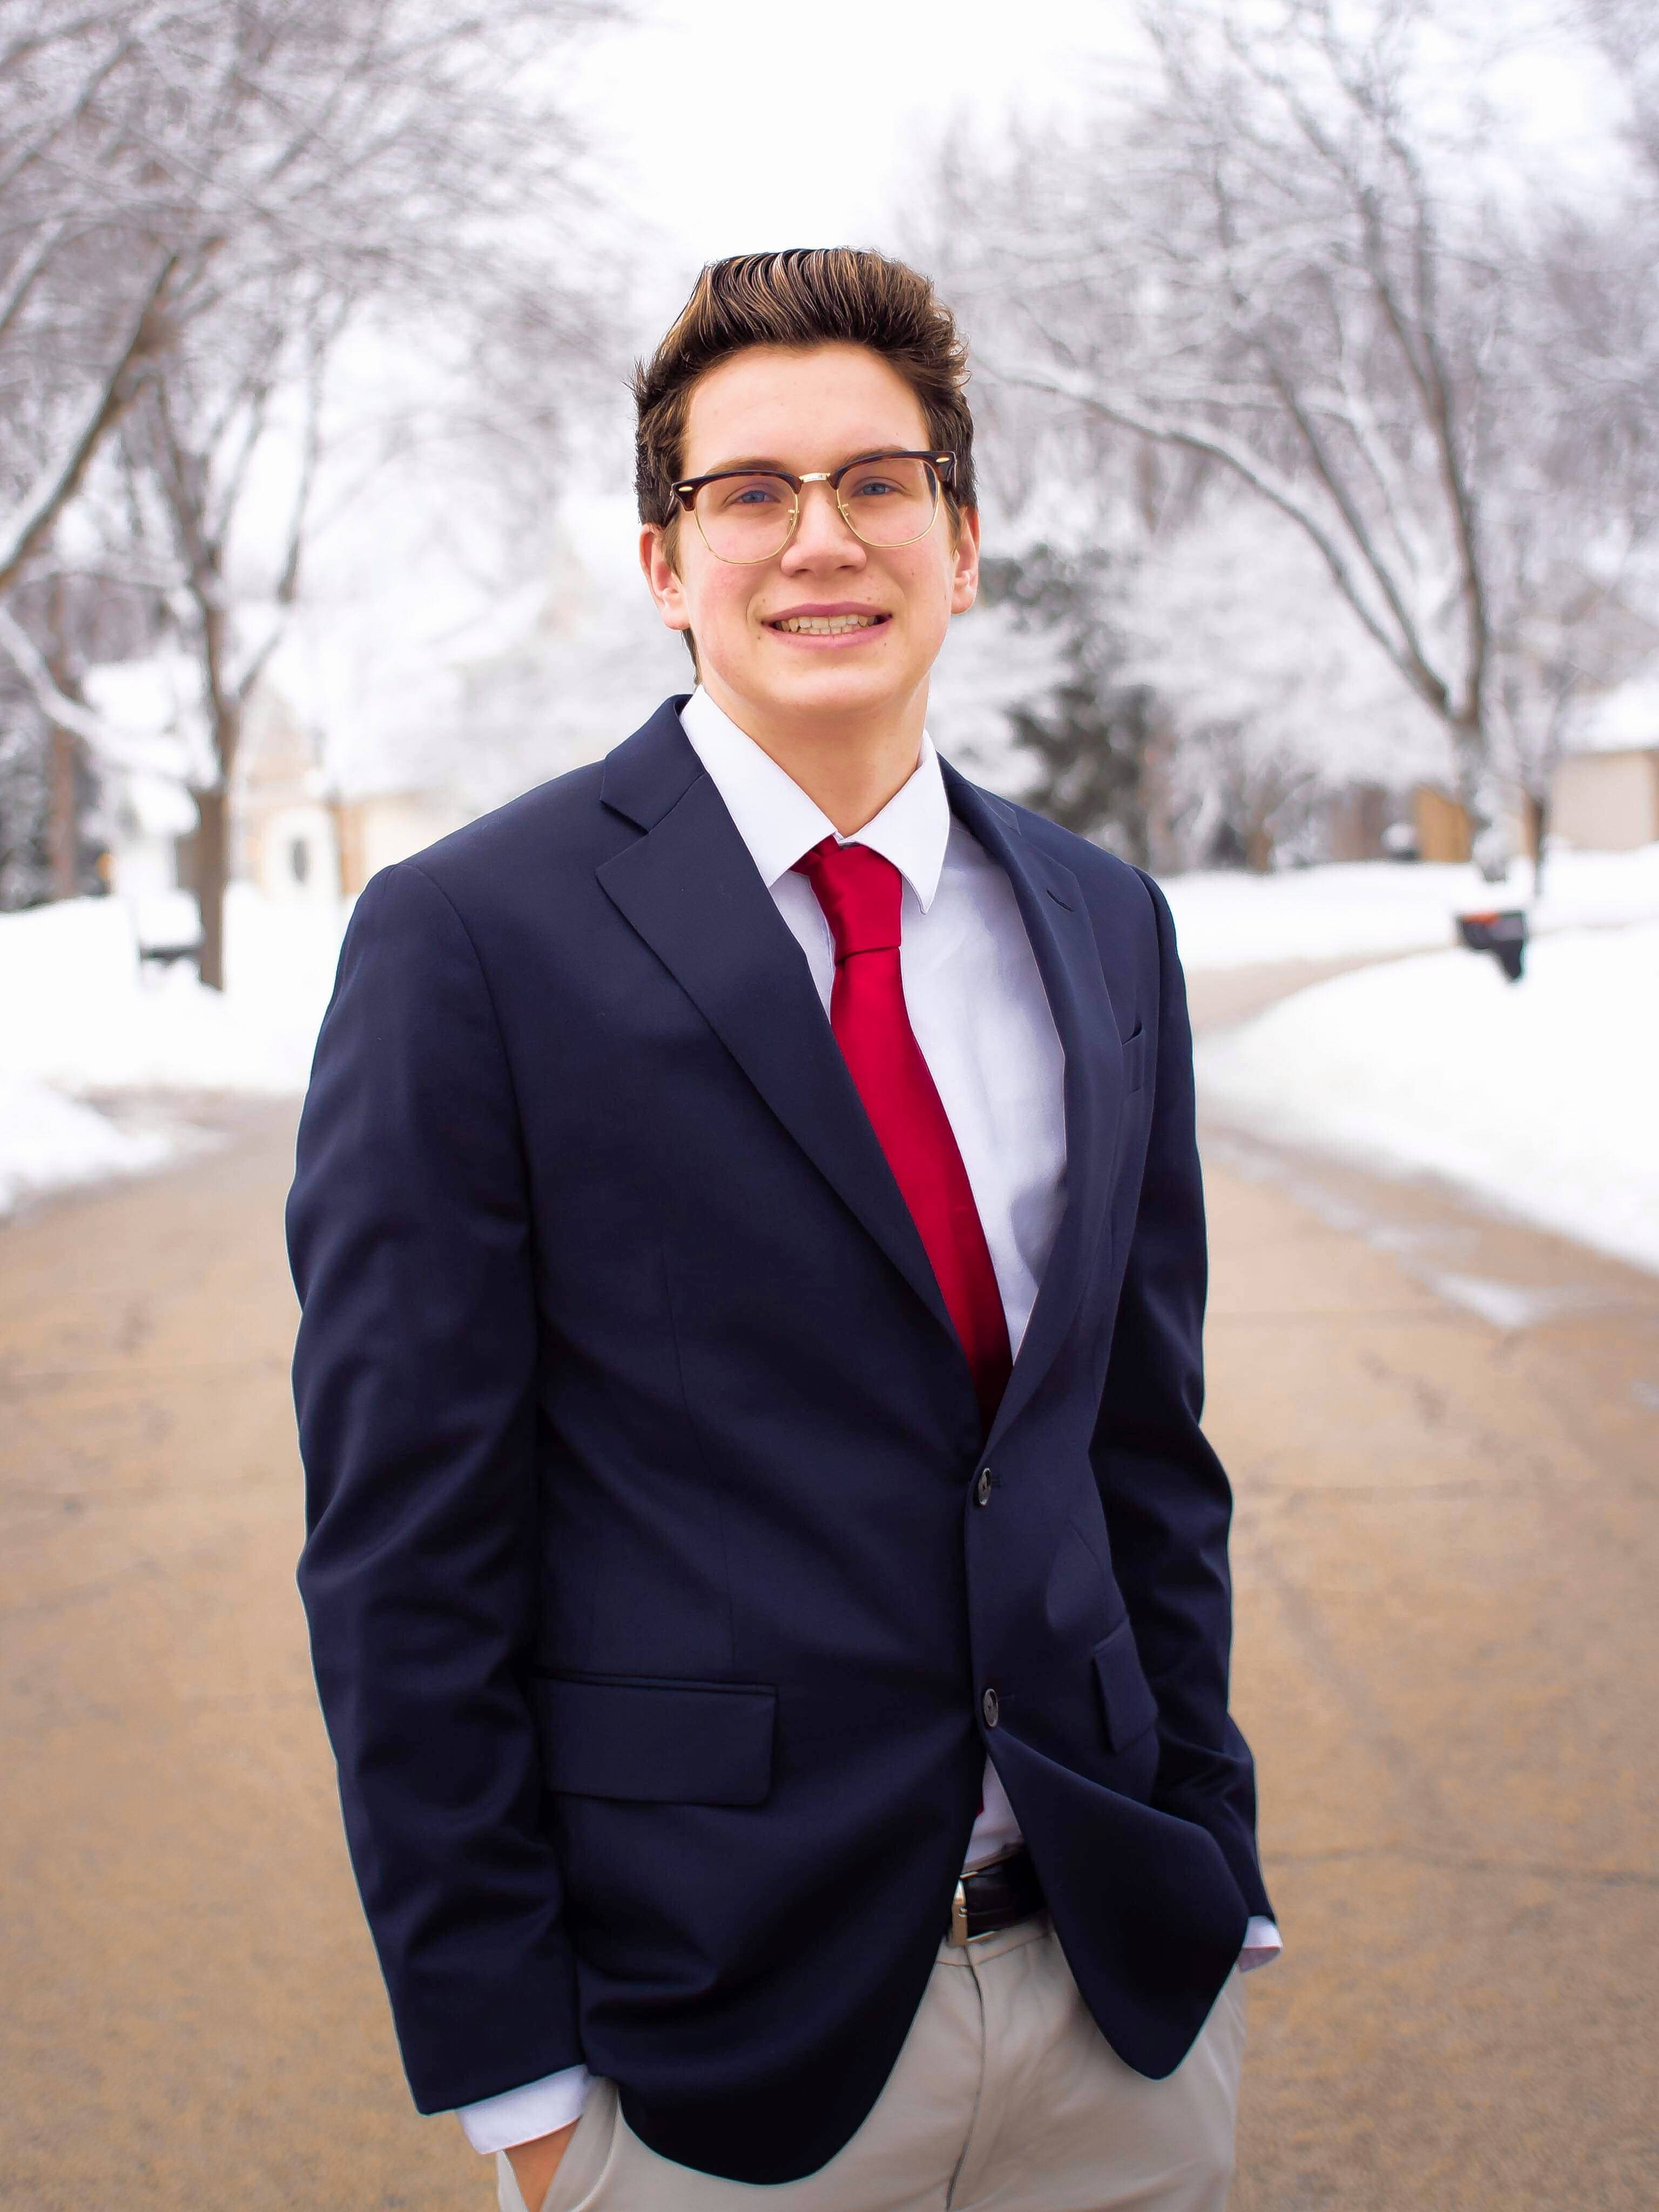 """I would like to see the youth of Gurnee have a voice,"" says Matthew Duray, a candidate for Gurnee village board who will turn 18 two days before the April 2 election."